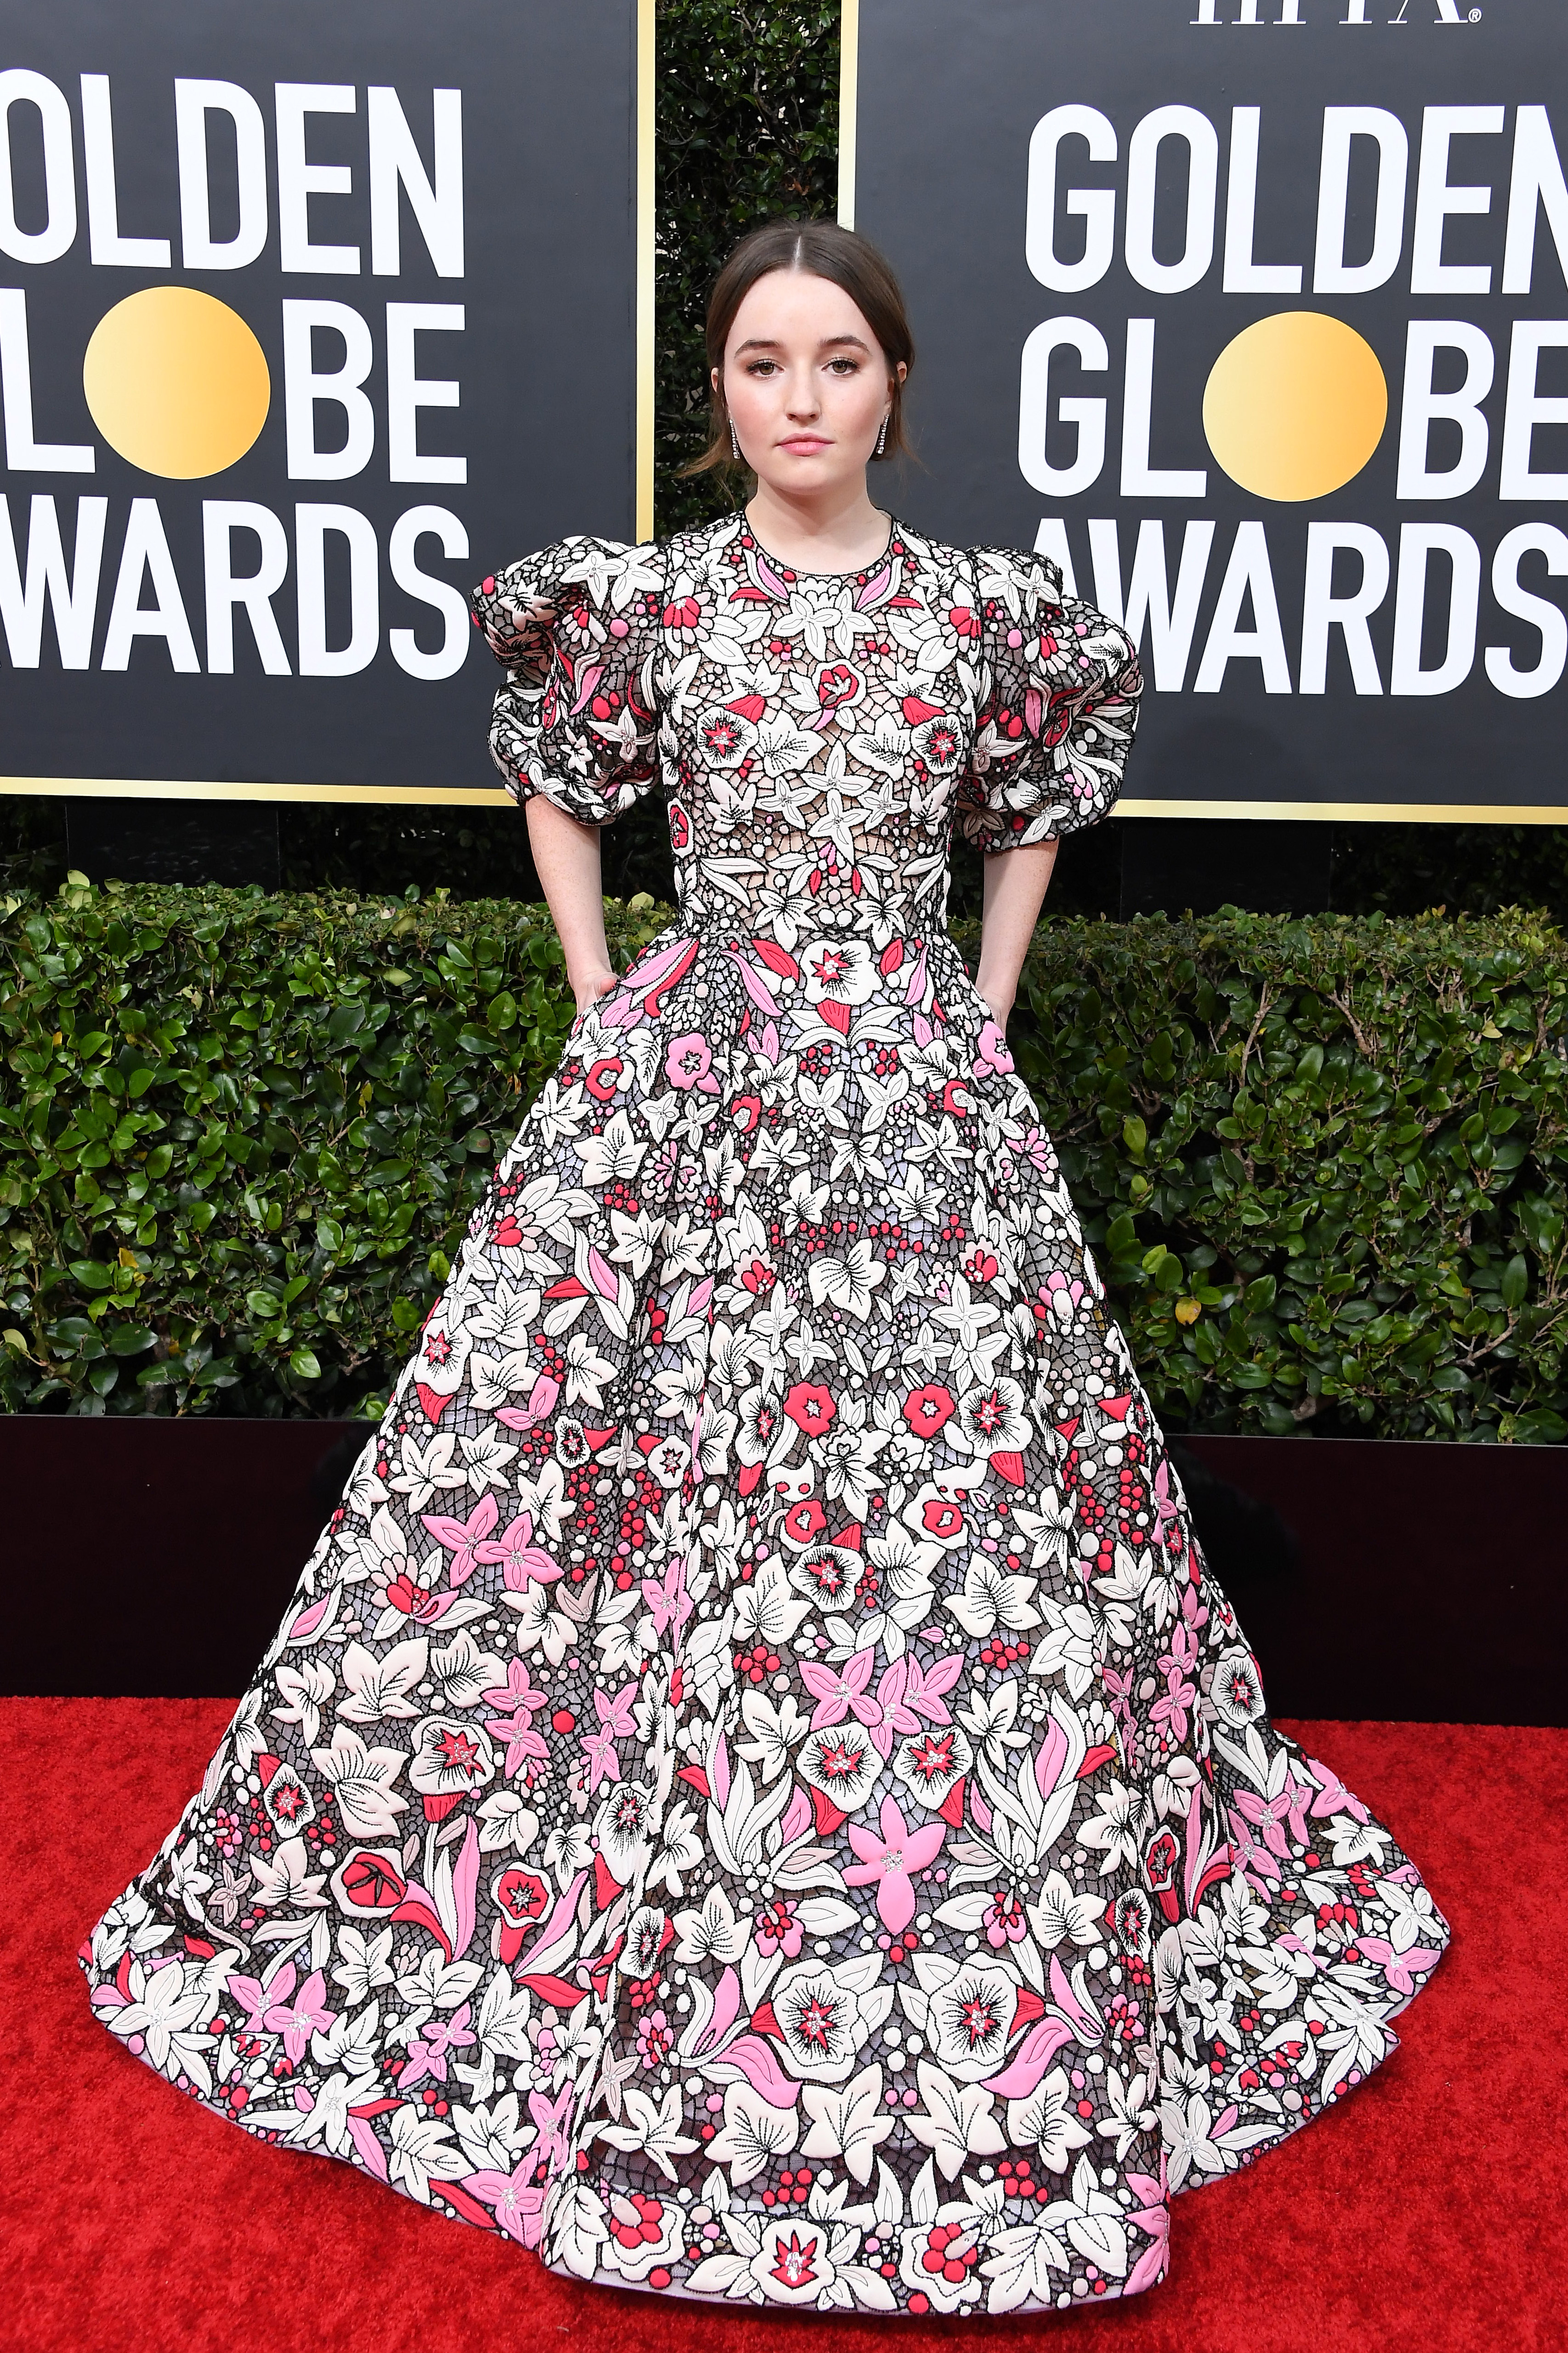 BEVERLY HILLS, CALIFORNIA - JANUARY 05: Kaitlyn Dever attends the 77th Annual Golden Globe Awards at The Beverly Hilton Hotel on January 05, 2020 in Beverly Hills, California. (Photo by Steve Granitz/WireImage)